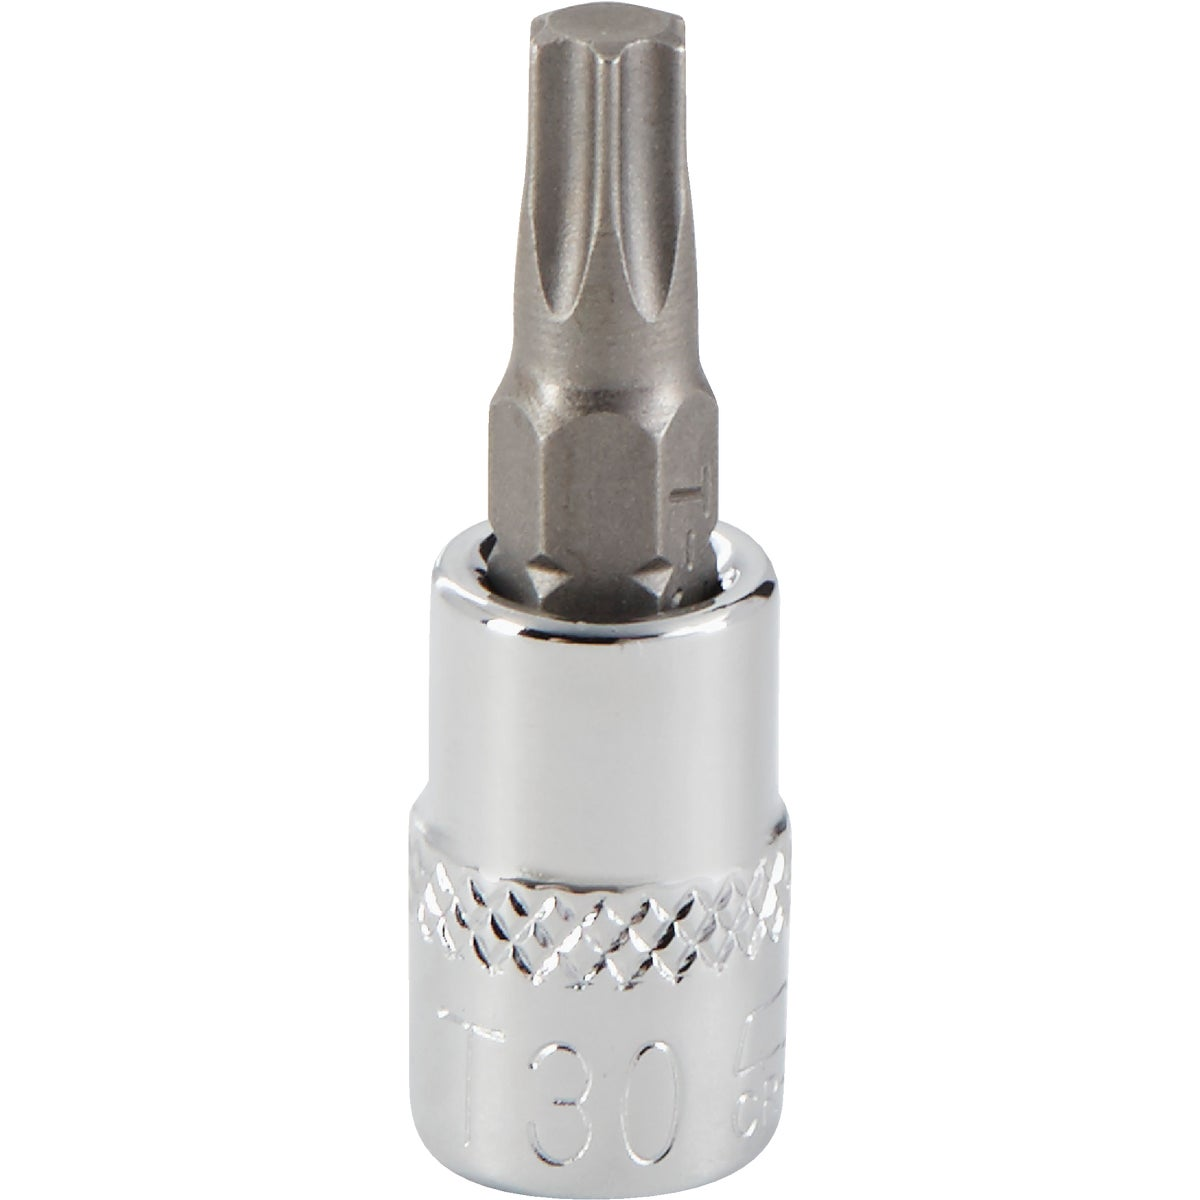 T30 TORX BIT SOCKET - 370010 by Bwt Inc